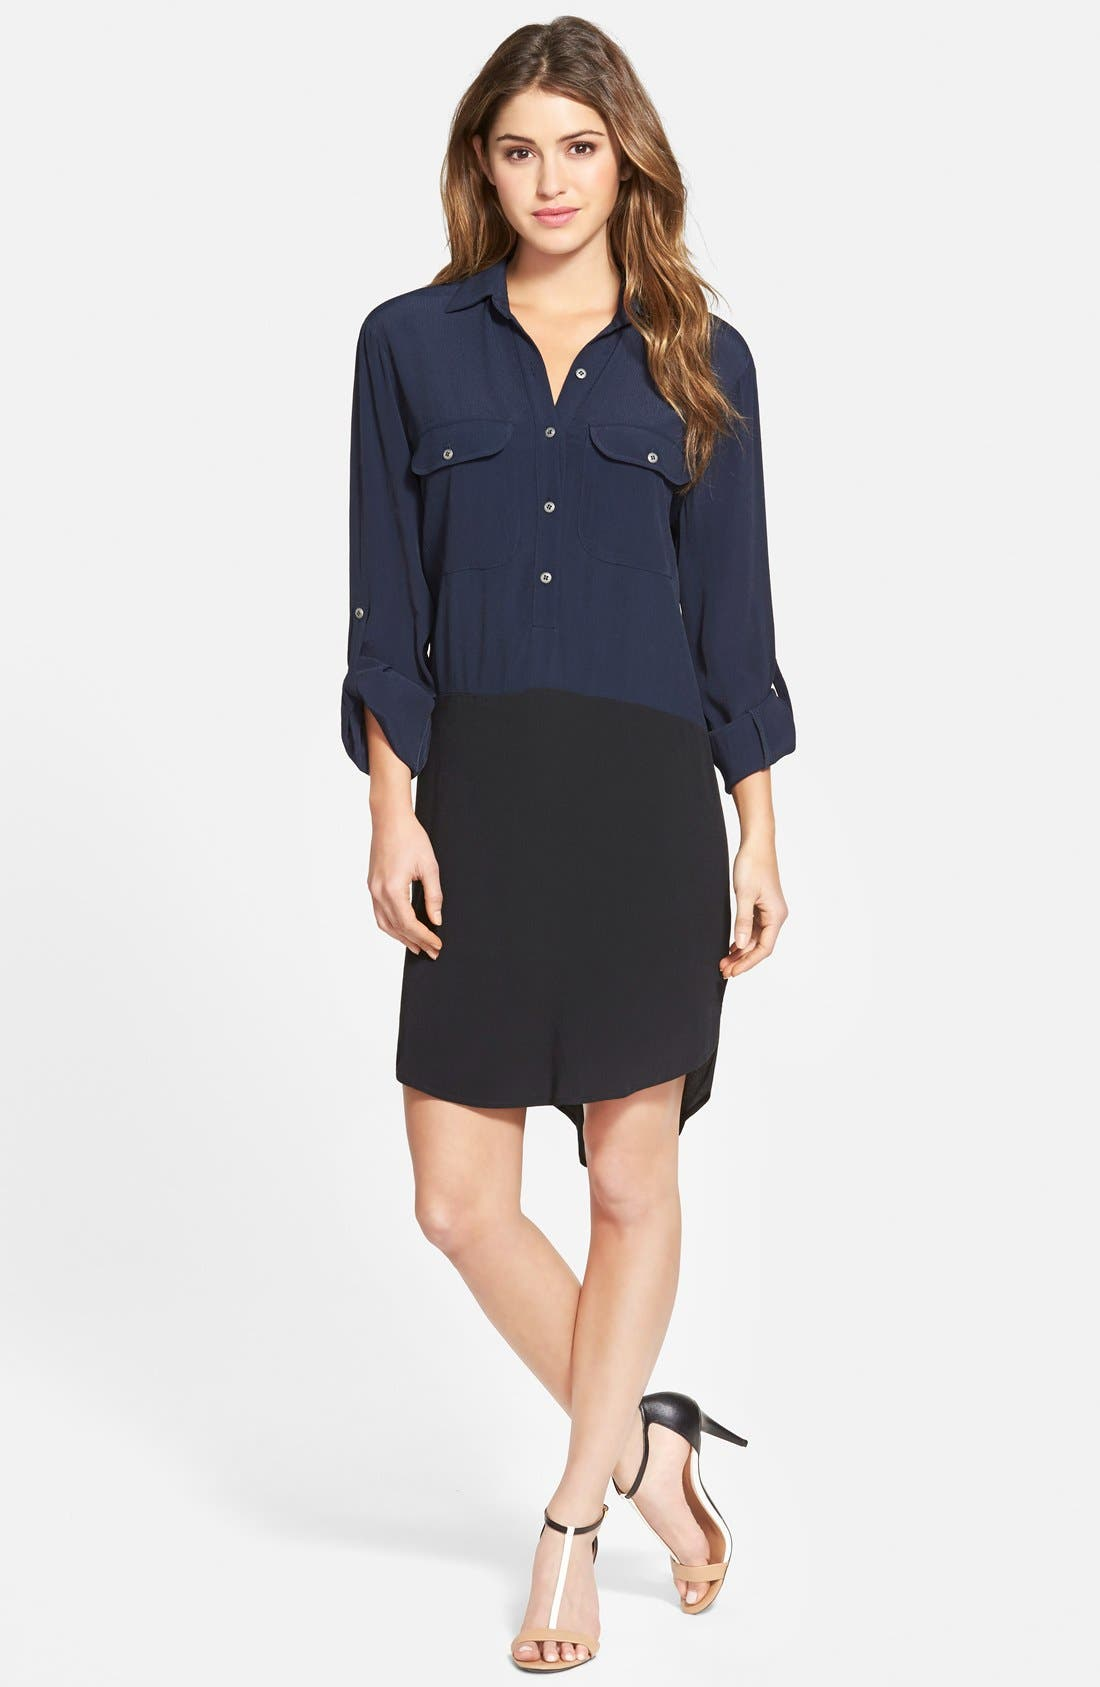 Alternate Image 1 Selected - Matty M Colorblock Shirtdress (Regular & Petite)